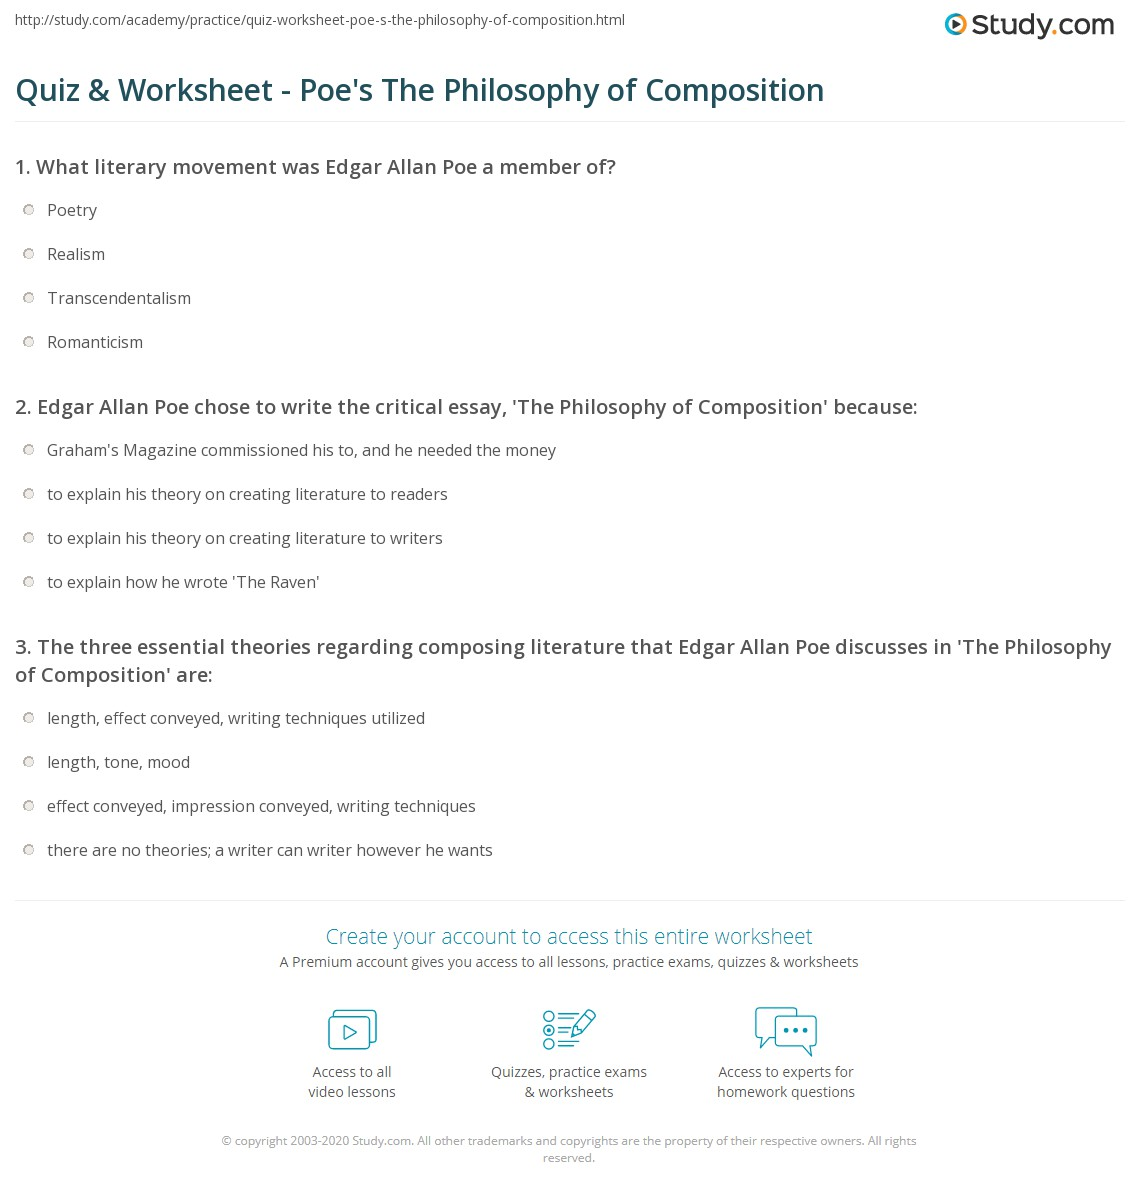 poe essay quiz worksheet poe s the philosophy of composition com  quiz worksheet poe s the philosophy of composition com edgar allan poe chose to write the